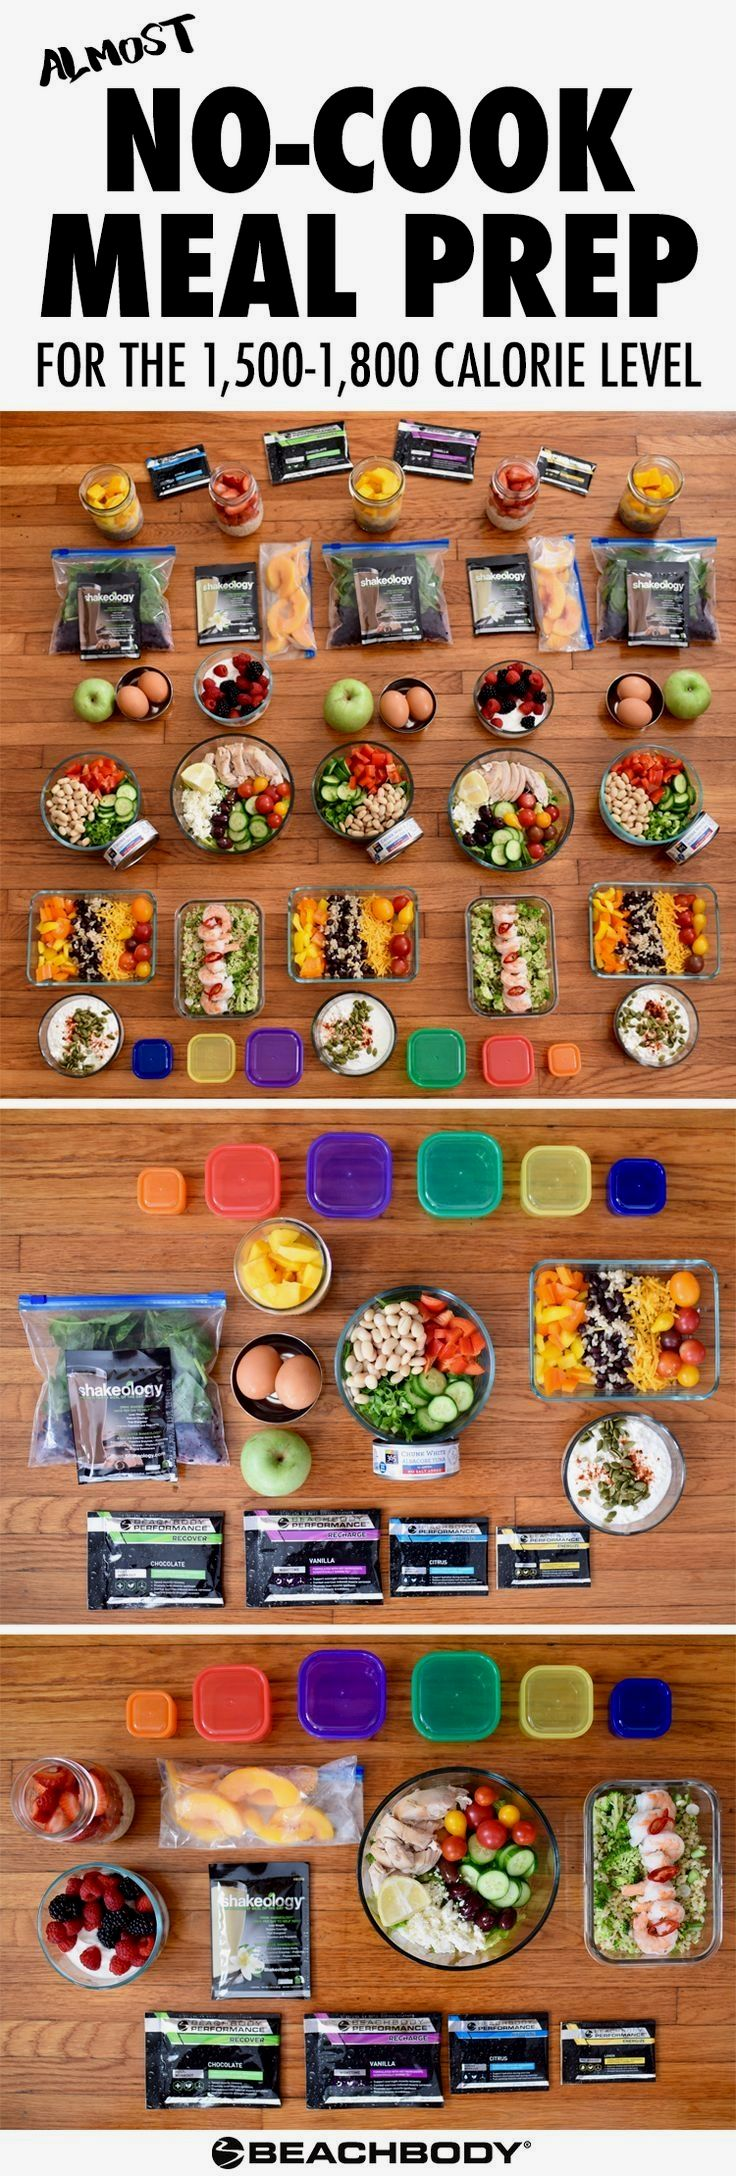 21 Day Fix Meal Plan 500 Calorie: Pin By Shelli Fuller Ashton On Get In Shape